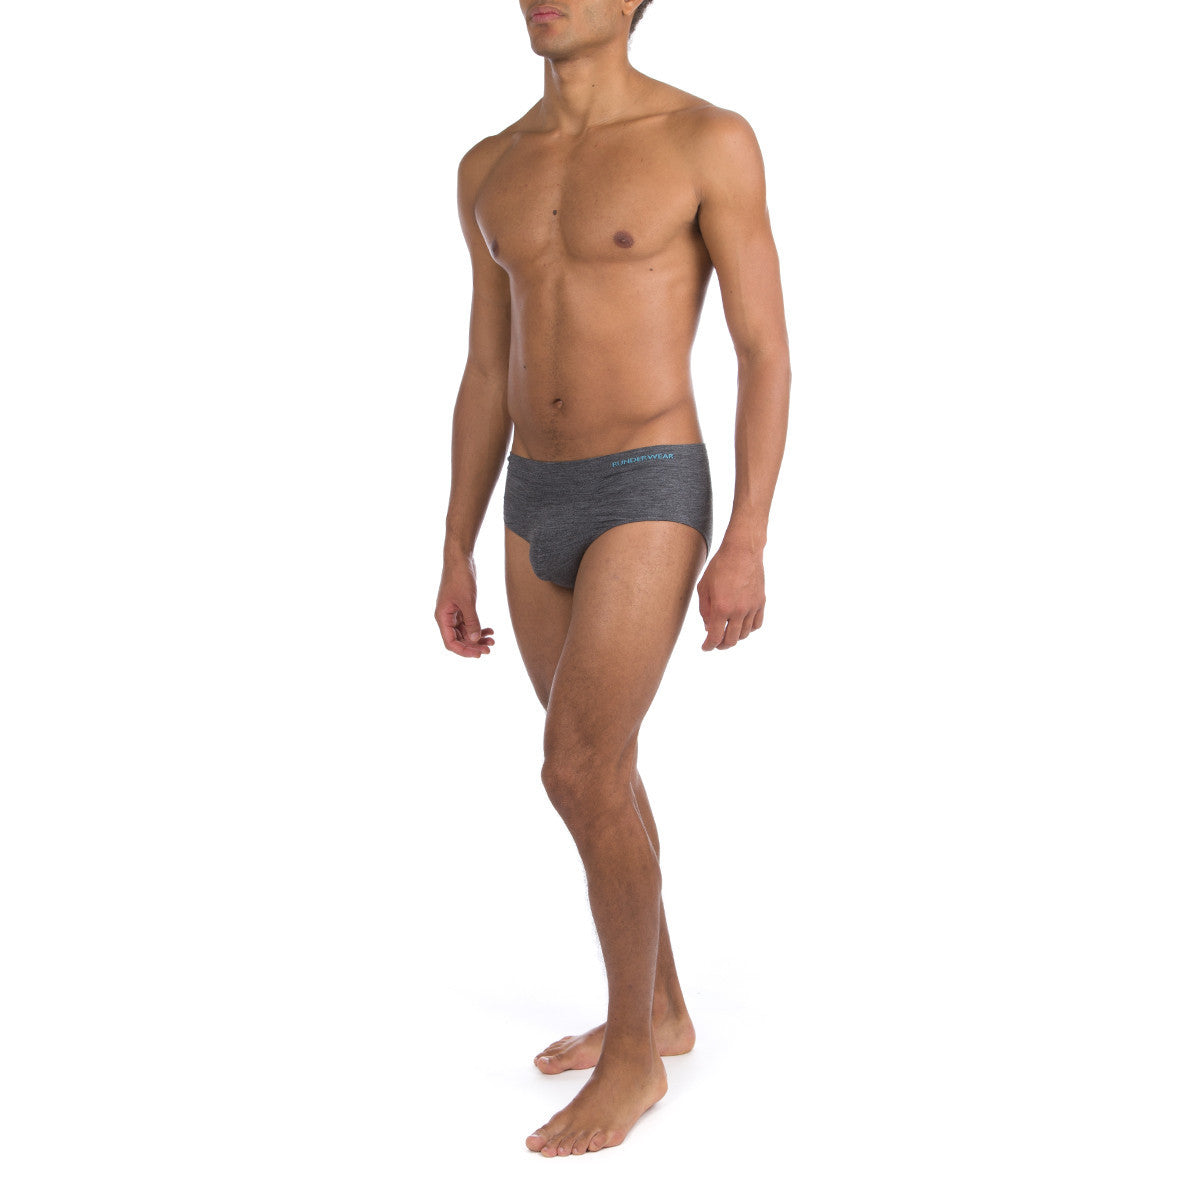 Men's Runderwear Merino Running and Multi Sport Brief / Pants Grey 3